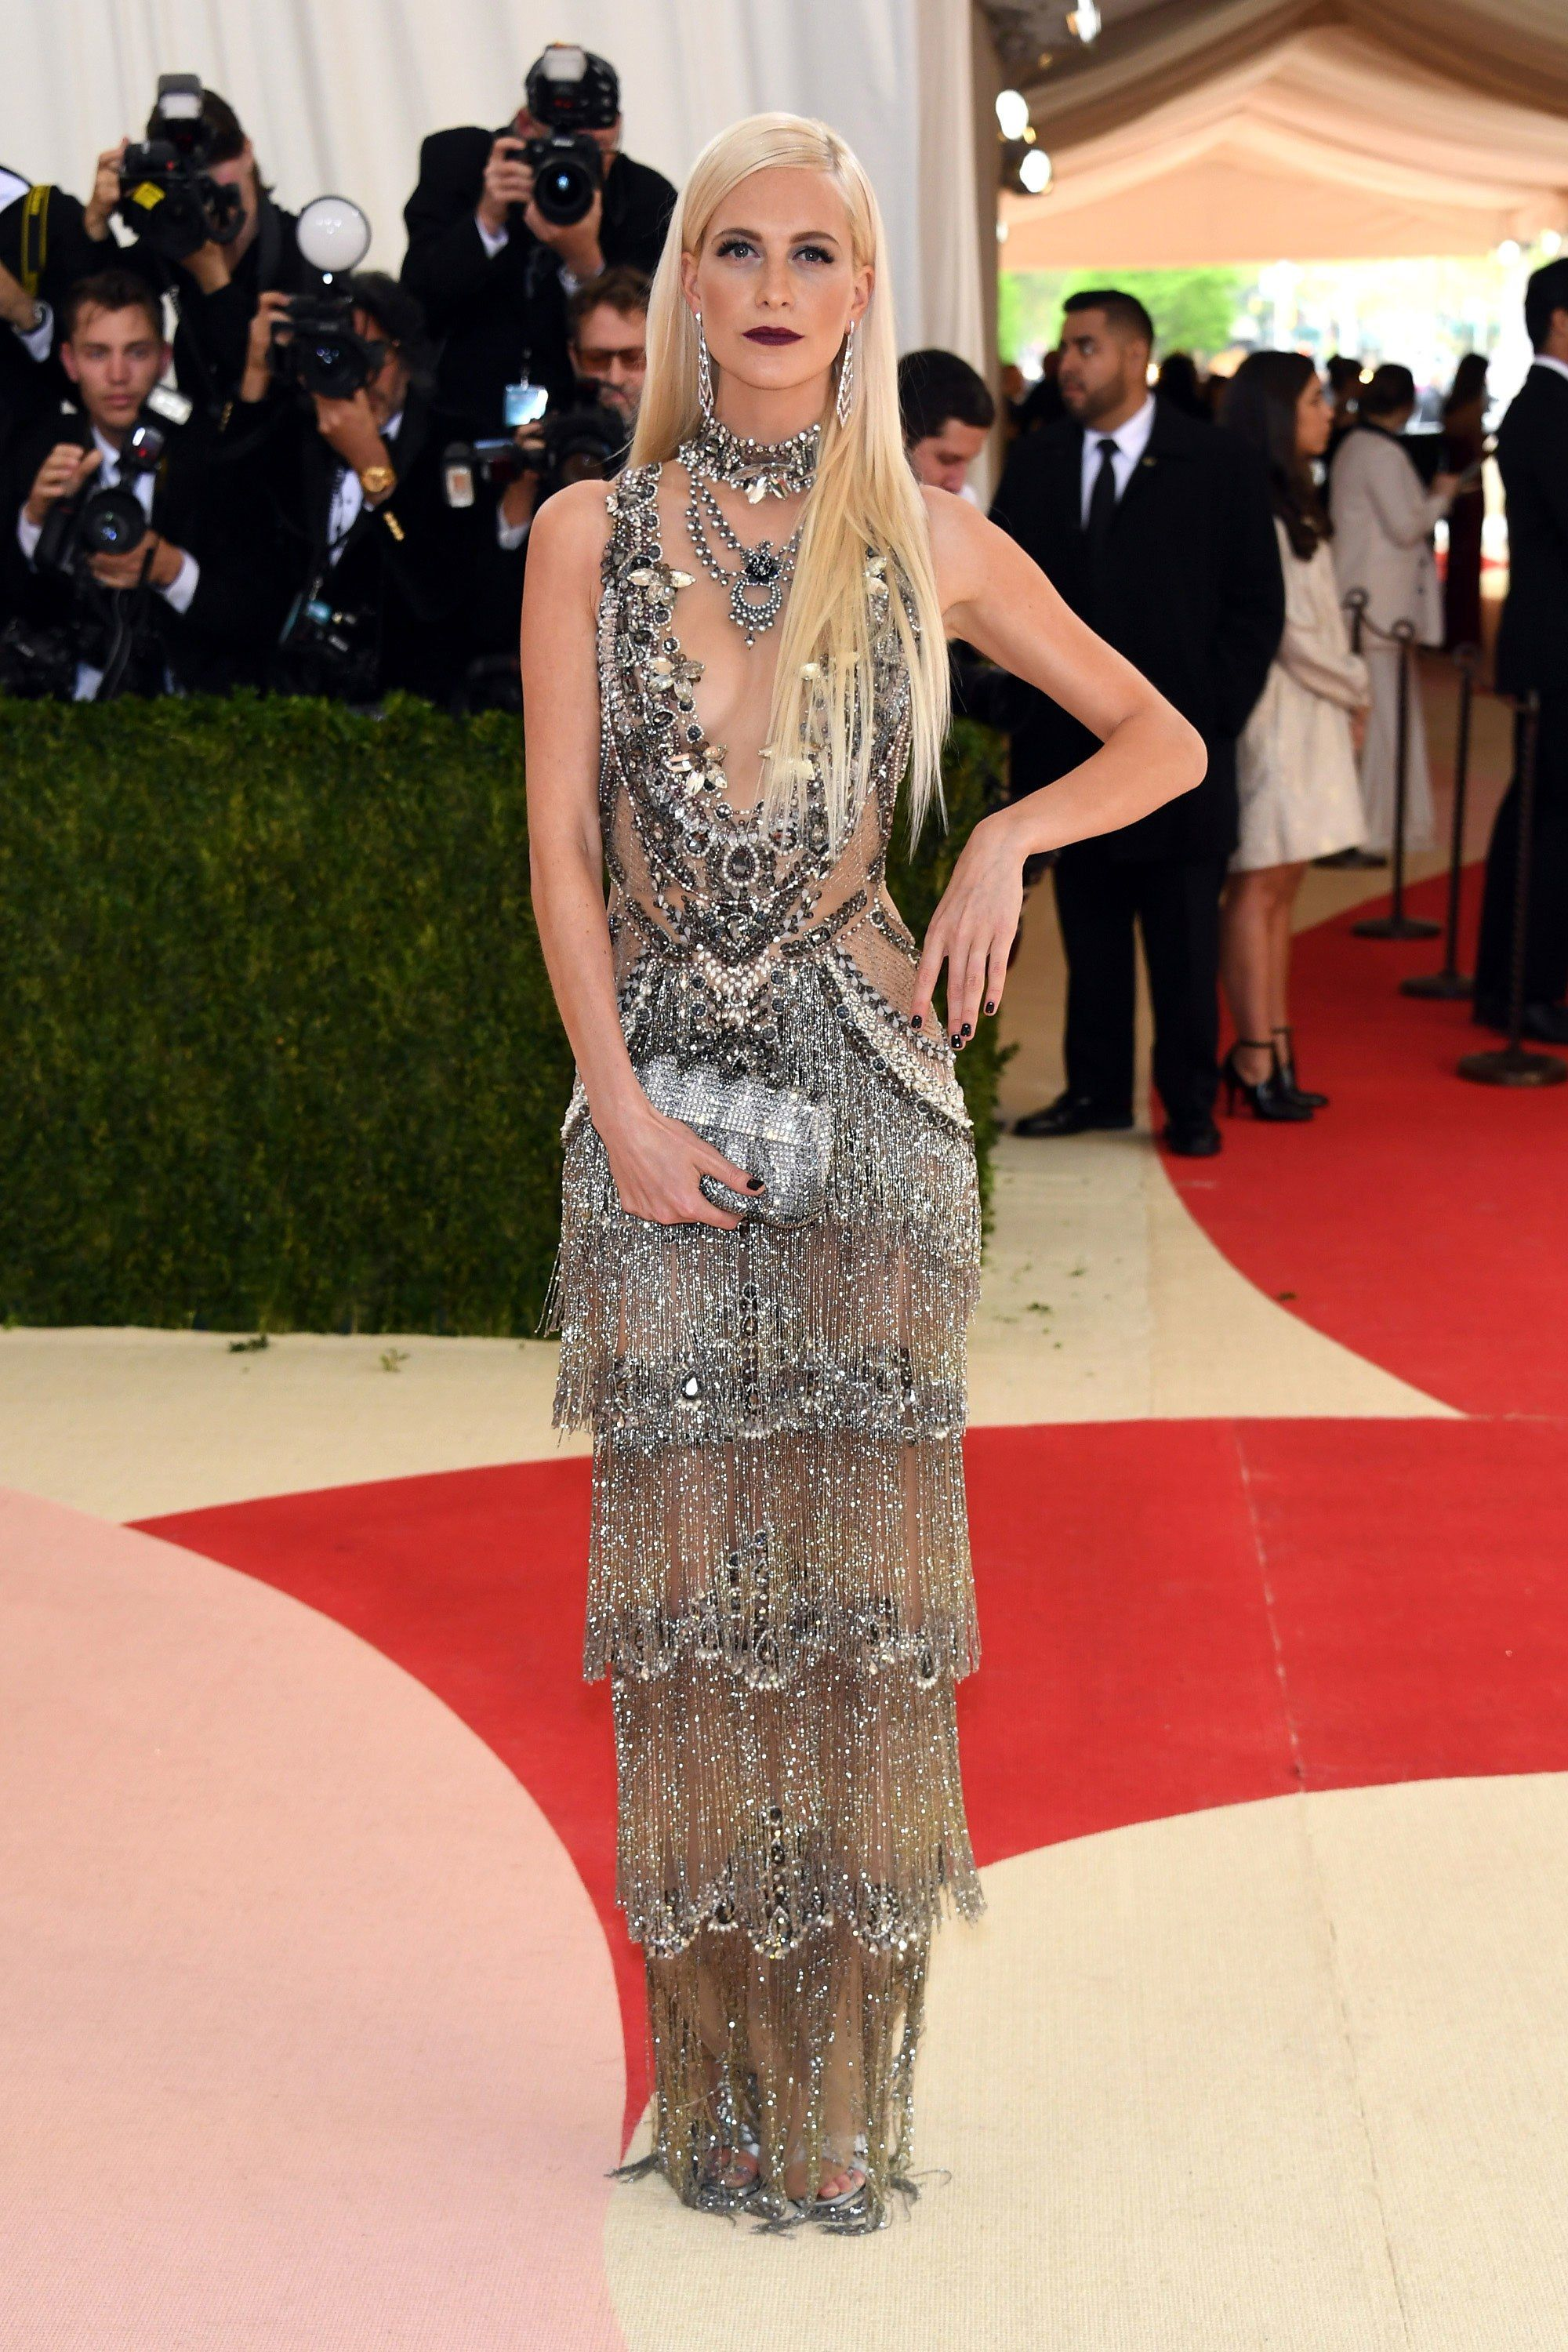 Poppy Delevingne in a Marchesa dress, Stephen Webster earrings, Oroton bag, and Giuseppe Zanotti shoes